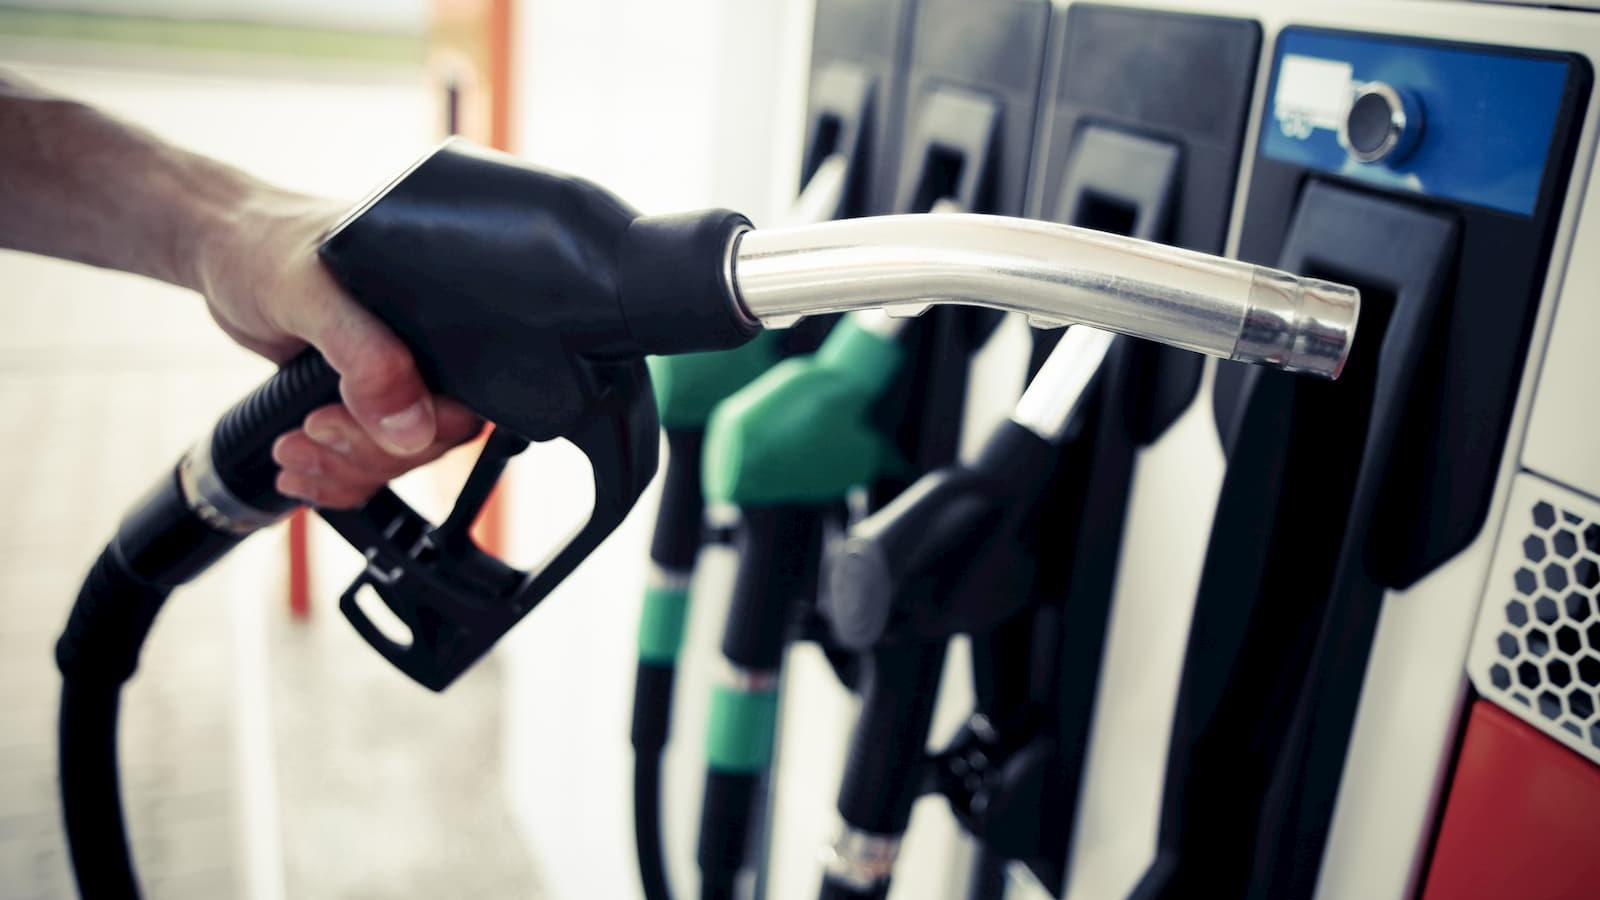 Qatar Petroleum announces fuel prices for January 2020